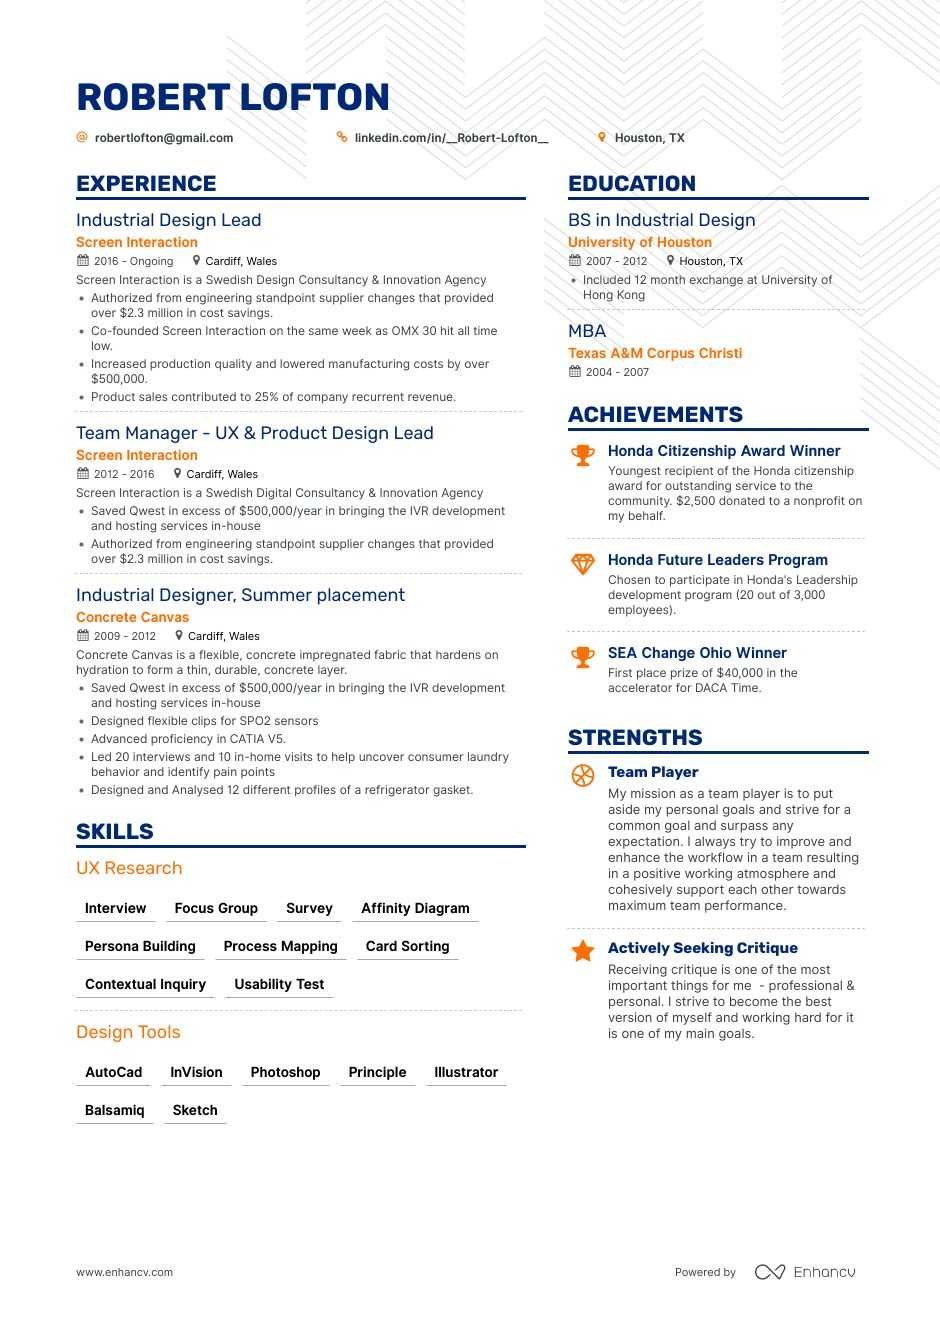 industrial designer resume example